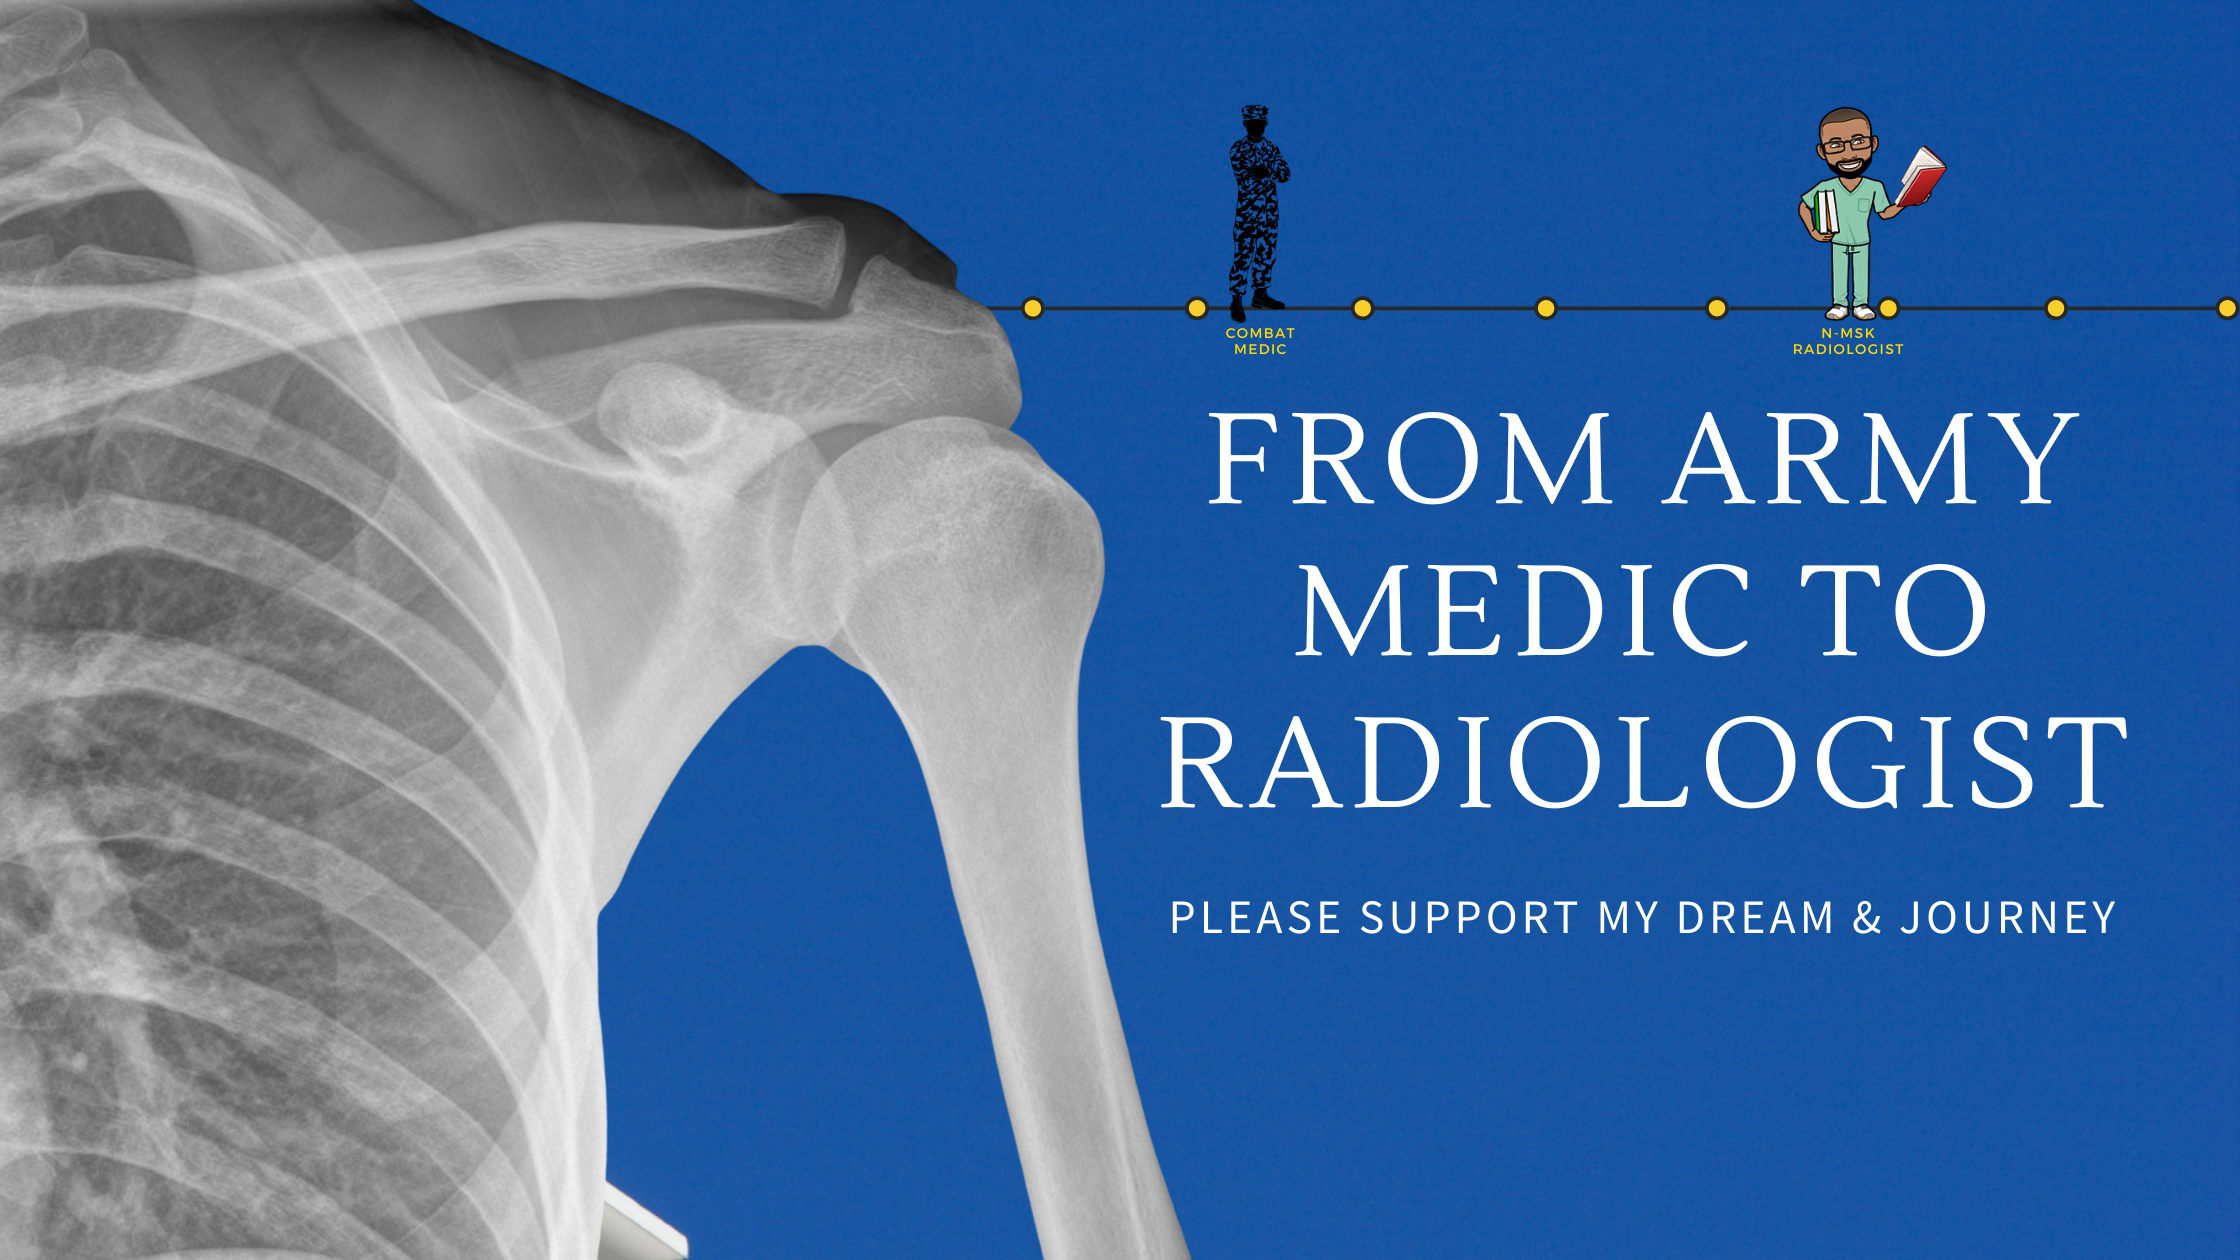 From Army Medic to Radiologist